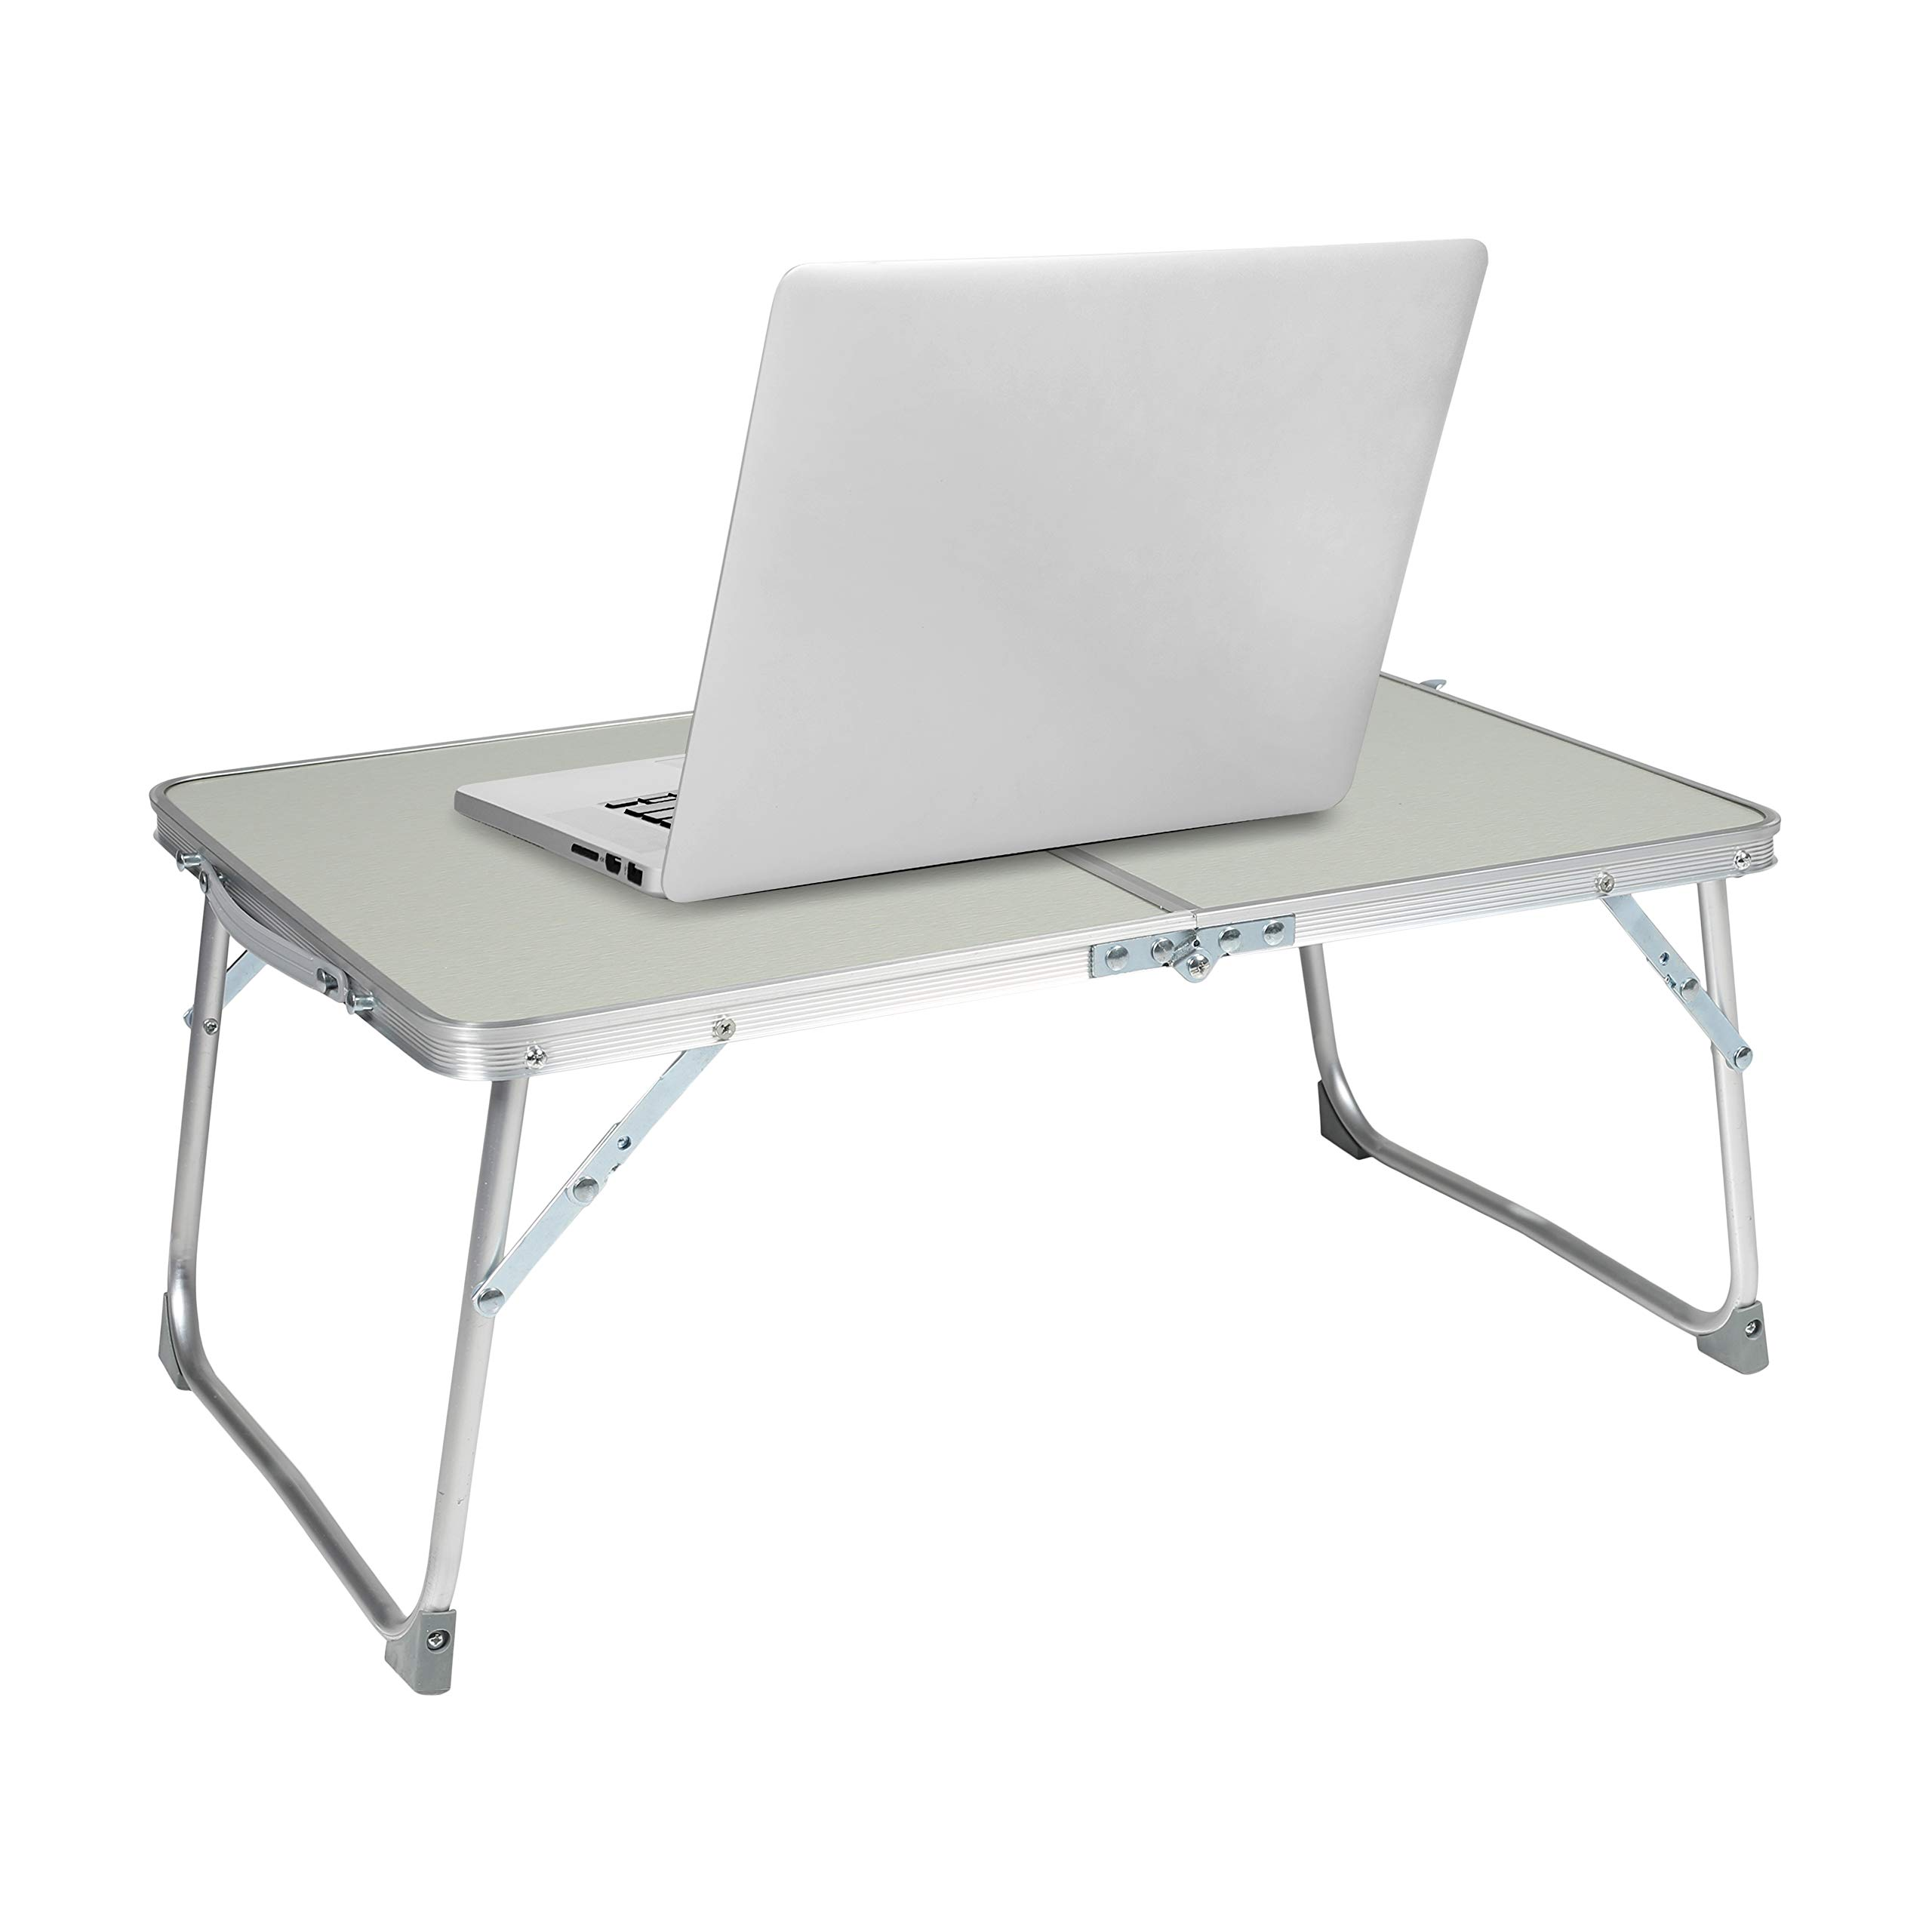 Milliard Aluminum Laptop Foldable Table, Breakfast in Bed Tray, Standing Desk and Couch Desk for Home Office and Travel - Folds in Half with Interior Storage Space Durable. by Milliard